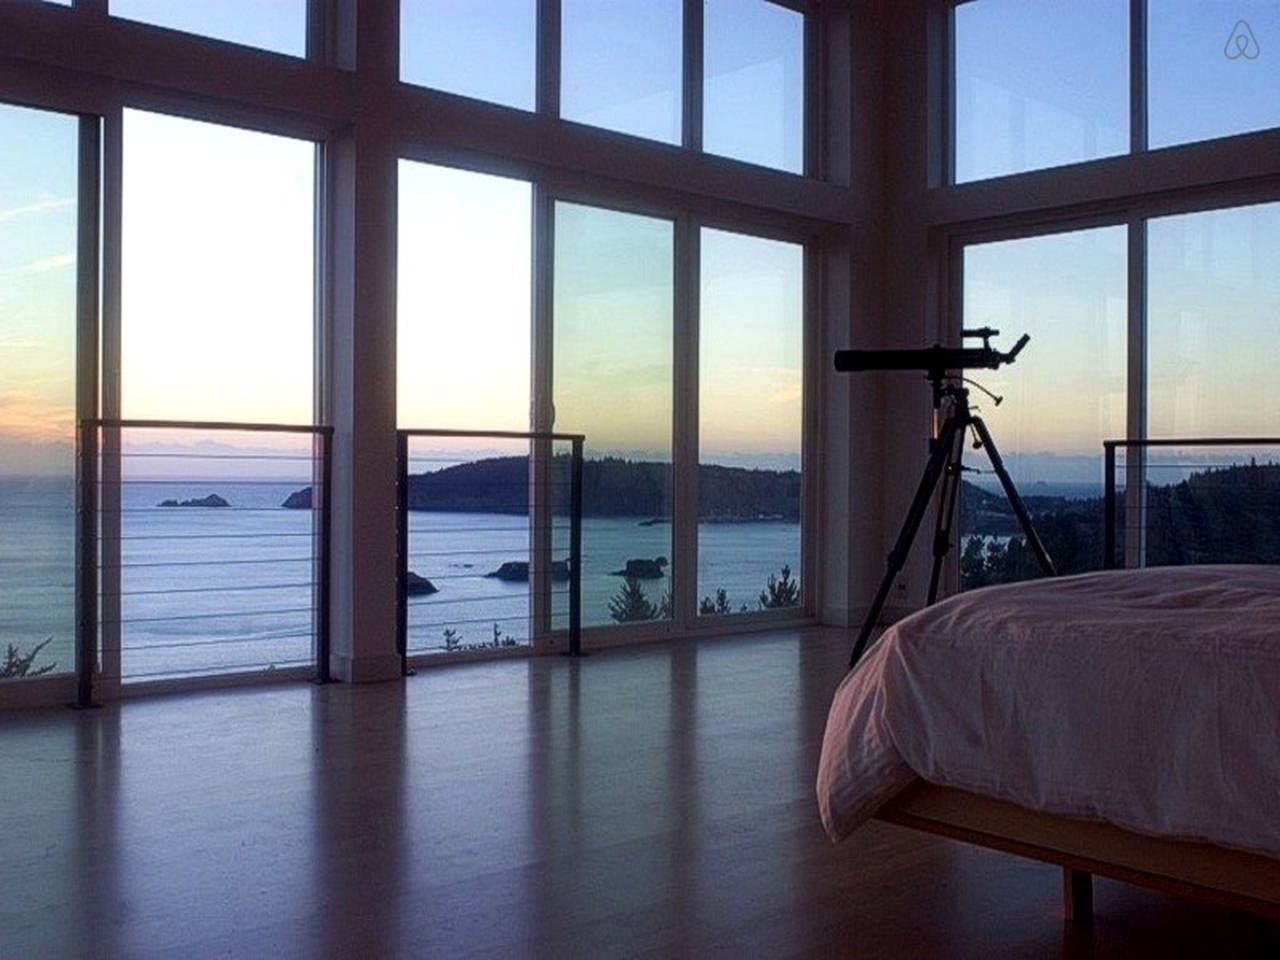 amazing ocean views design amazing ocean views Bedrooms with Amazing Ocean Views 25a1cb686e3a52111e87e93aceee3bf1